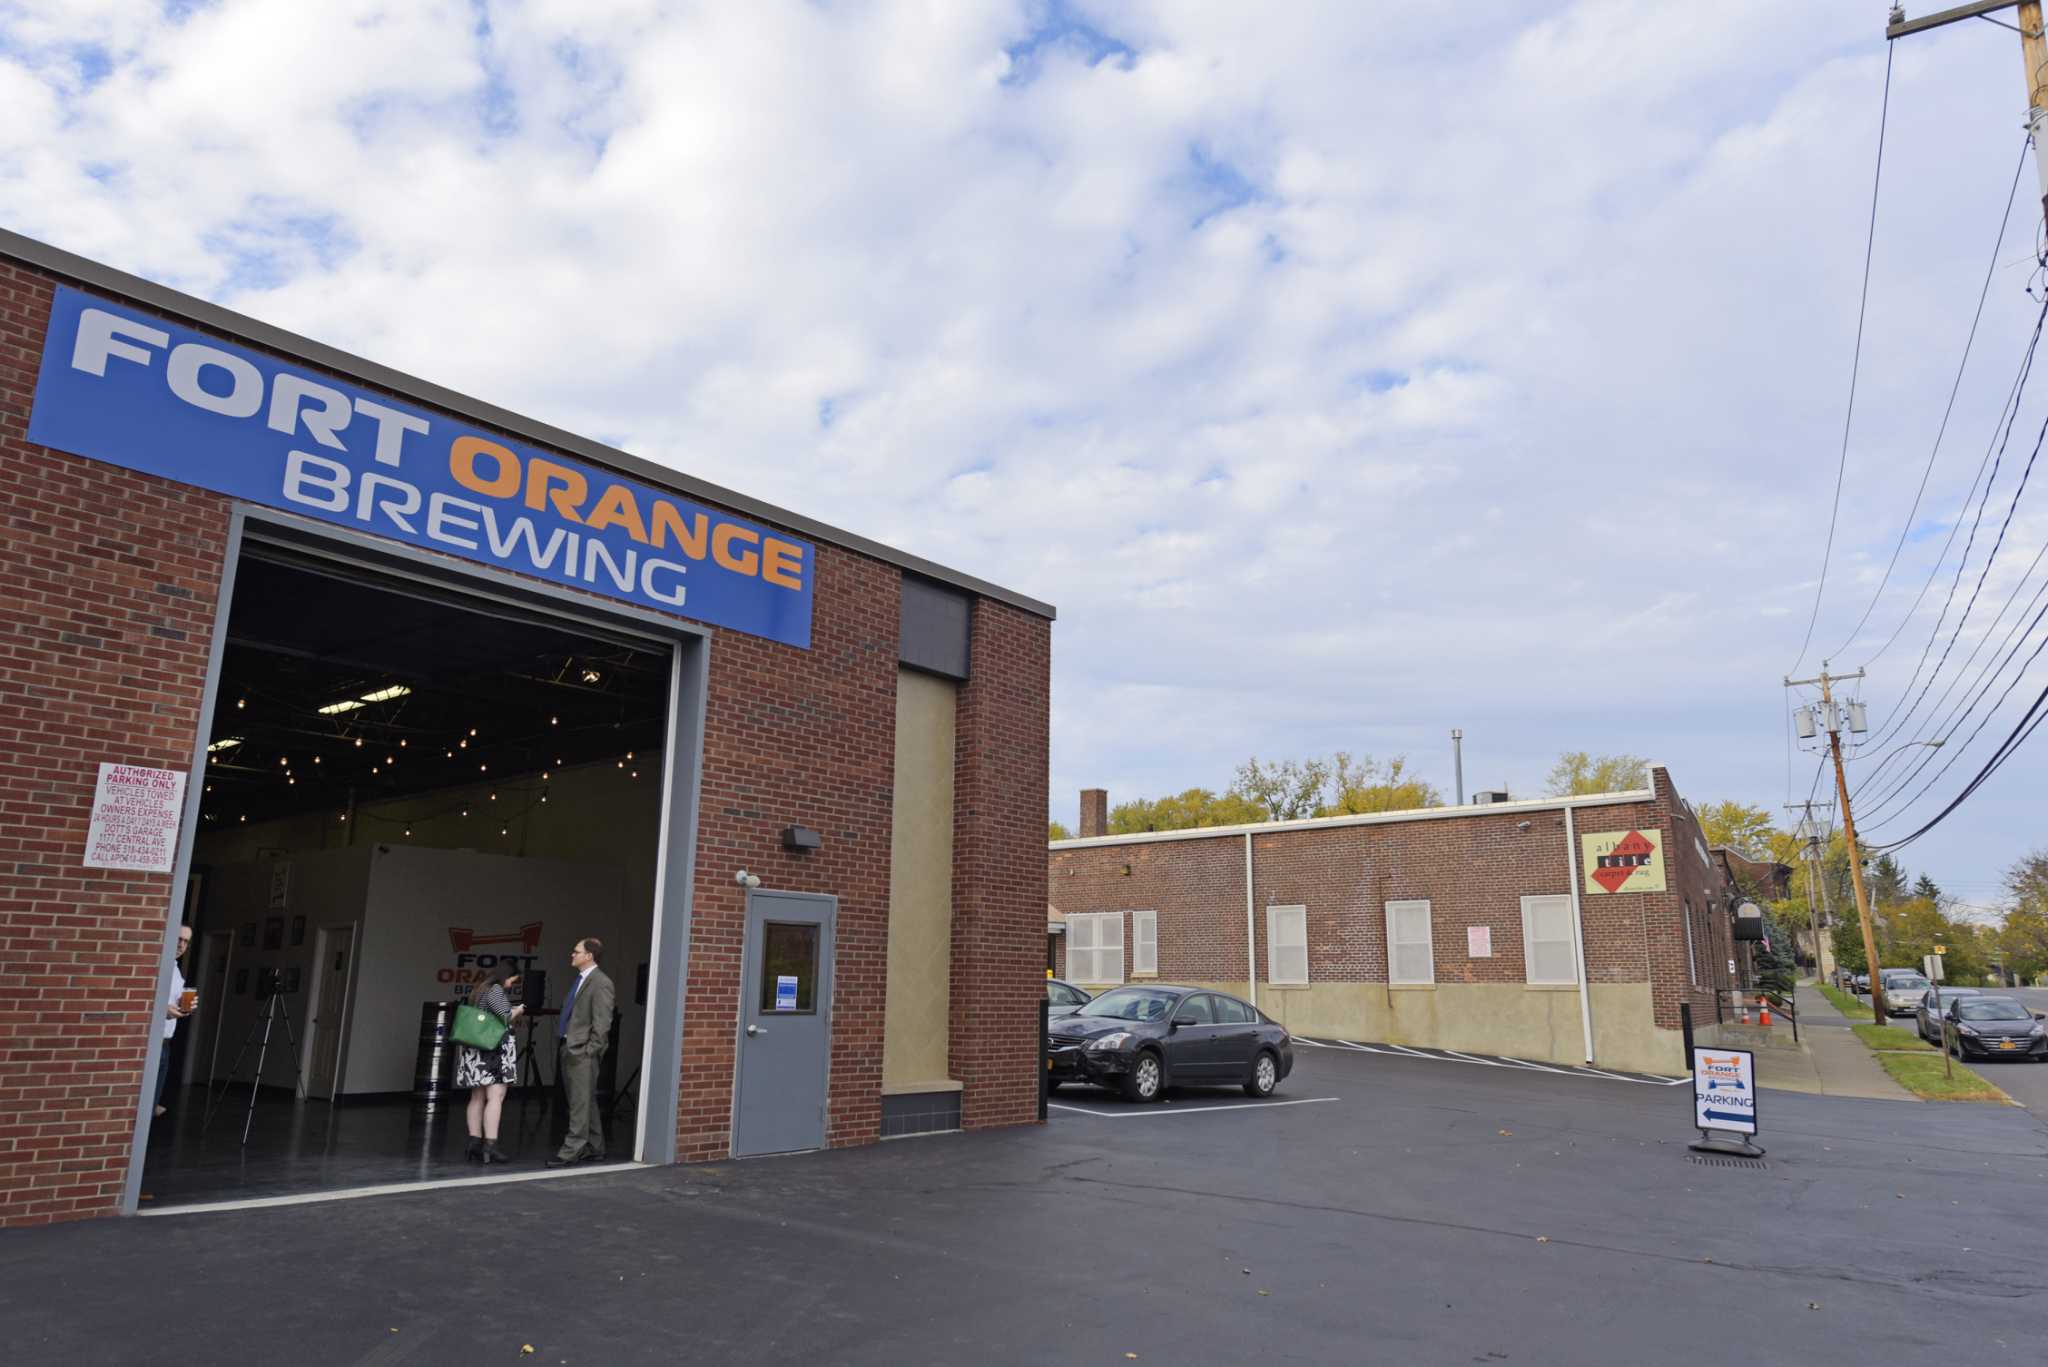 Cars For Sale Albany Ny >> Fort Orange Brewing in Albany opens